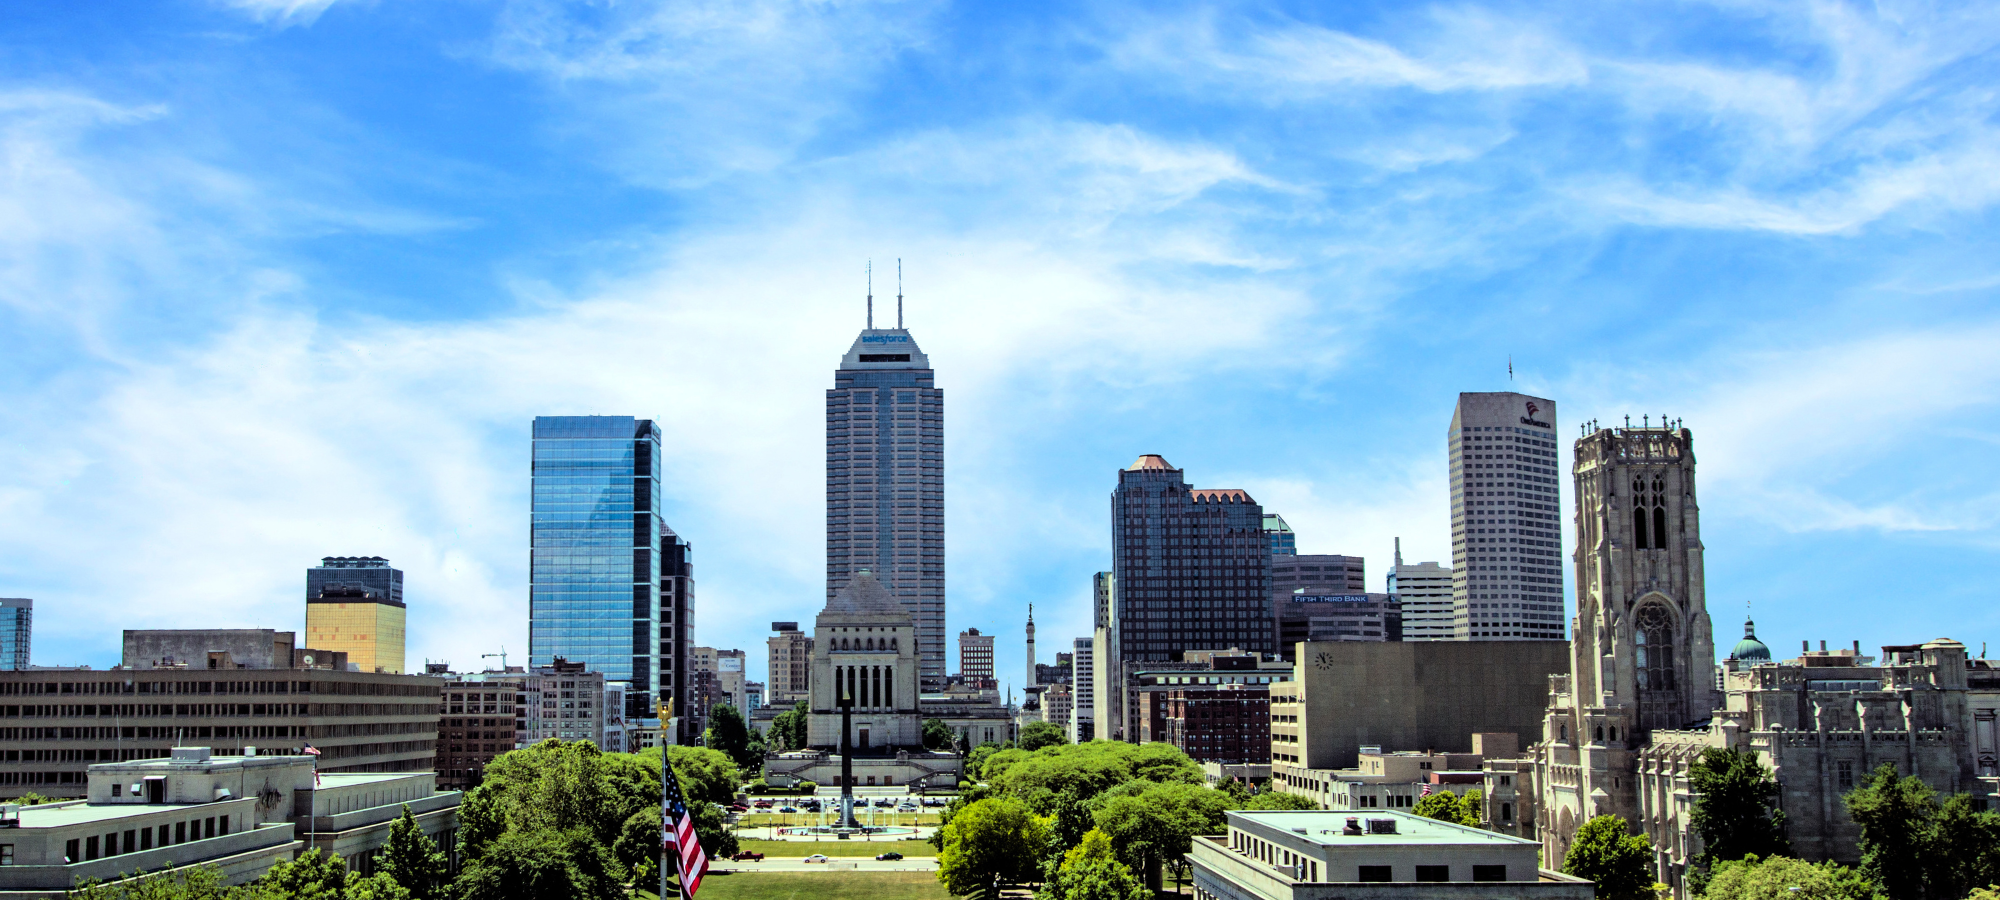 Indianapolis IN skyline